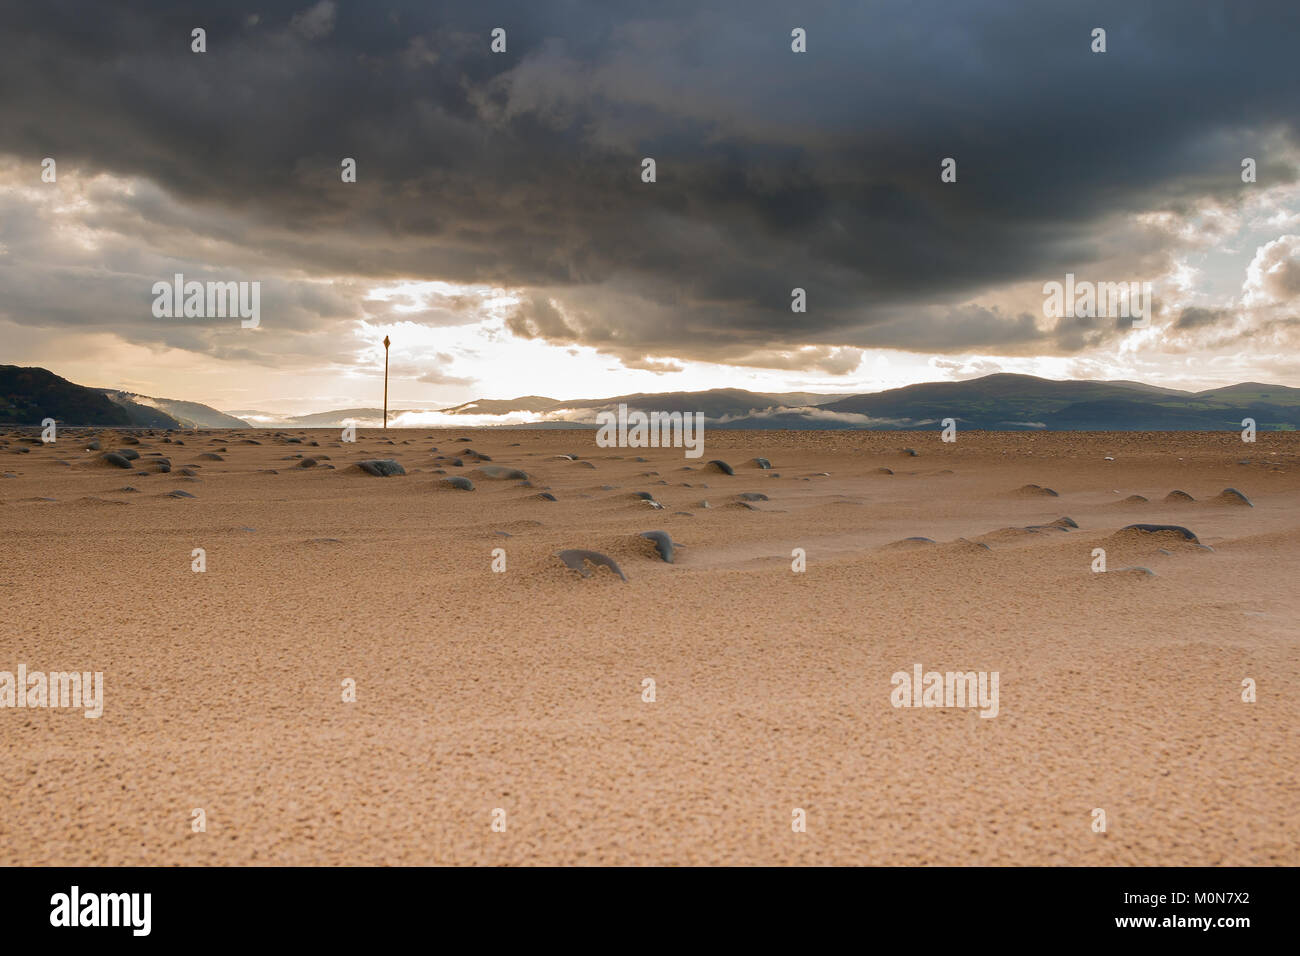 Scary dark storm clouds make a foreboding appearance in the skies over Ynyslas Estuary Beach. Sunlit background - Stock Image